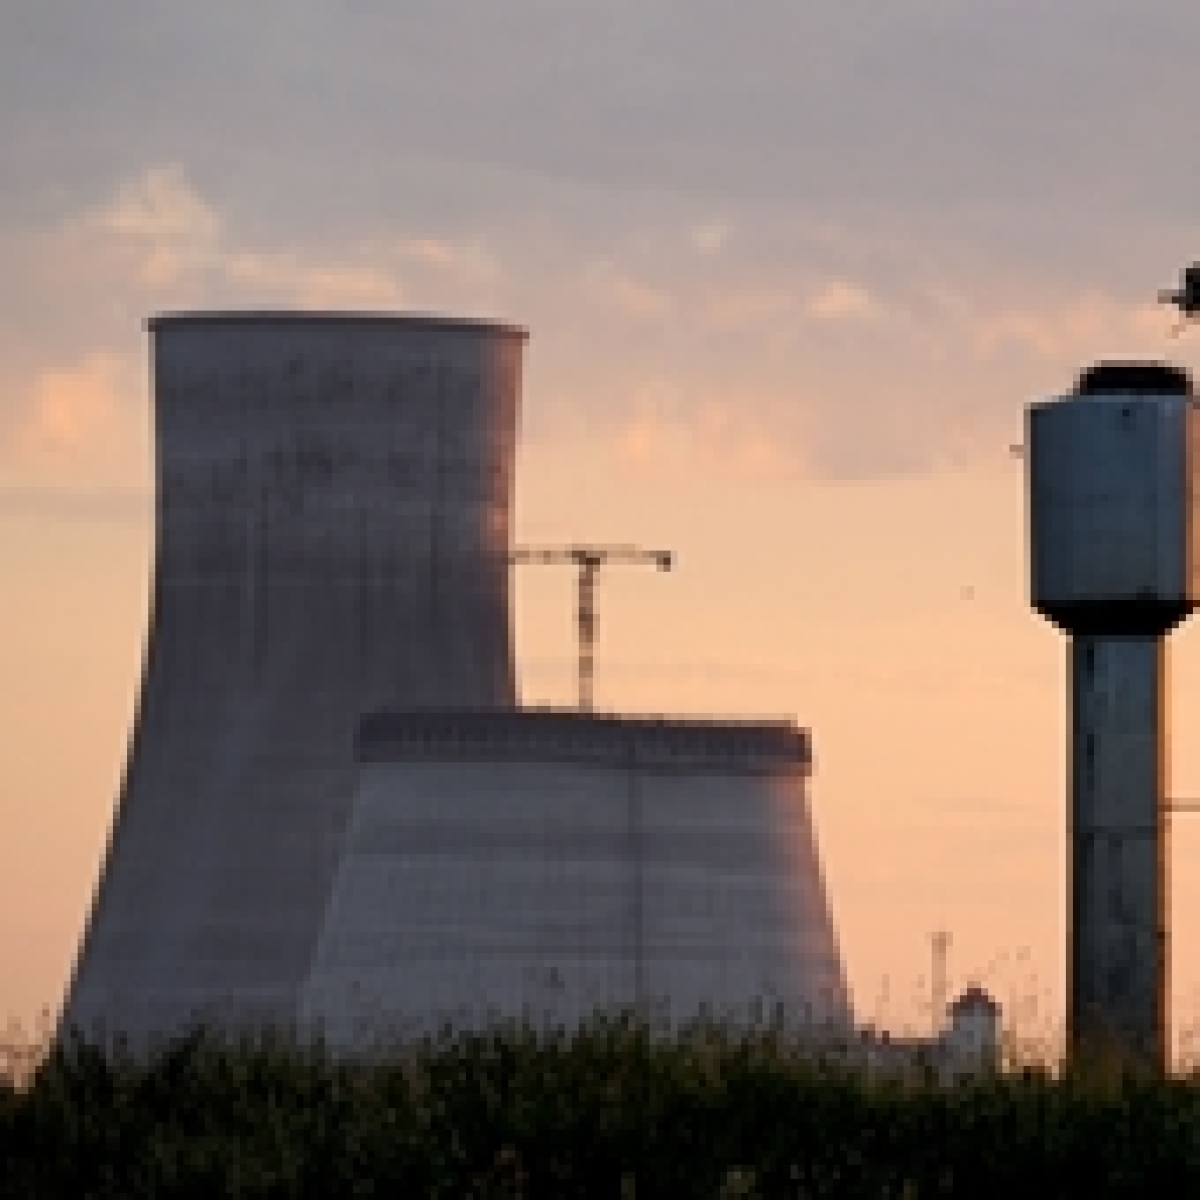 Nuclear plants are safe, says Govt